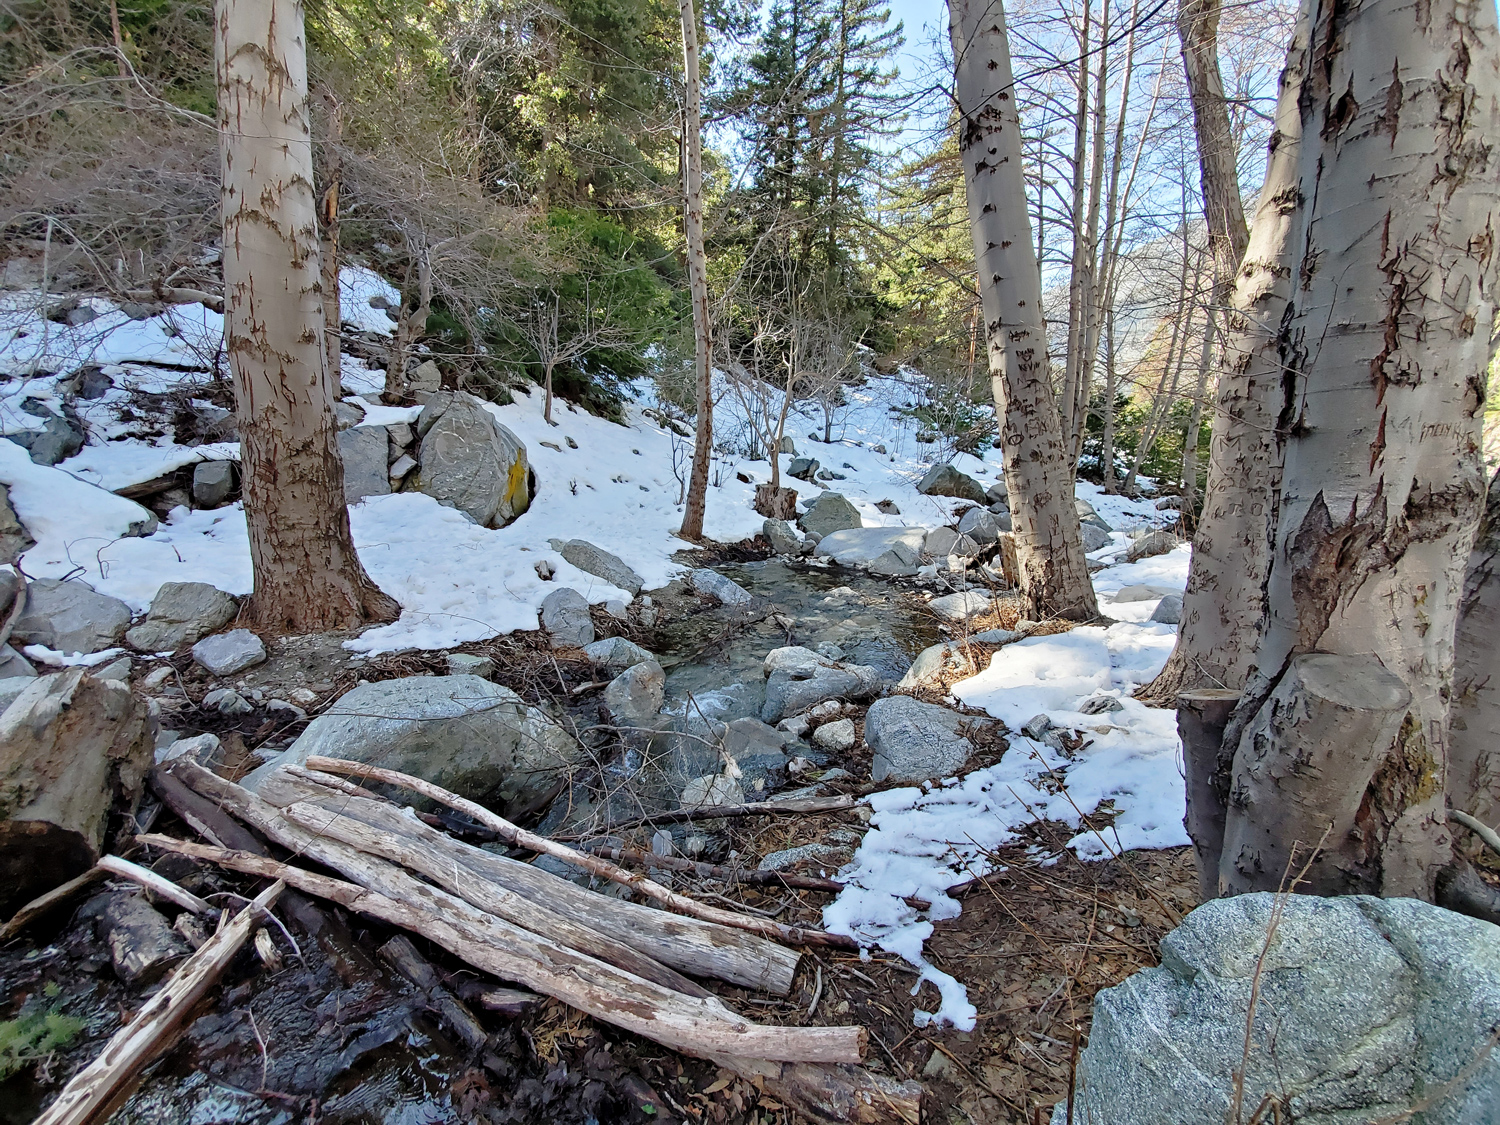 A bridge made of fallen logs crosses the stream at the entrance to Icehouse Canyon Trail